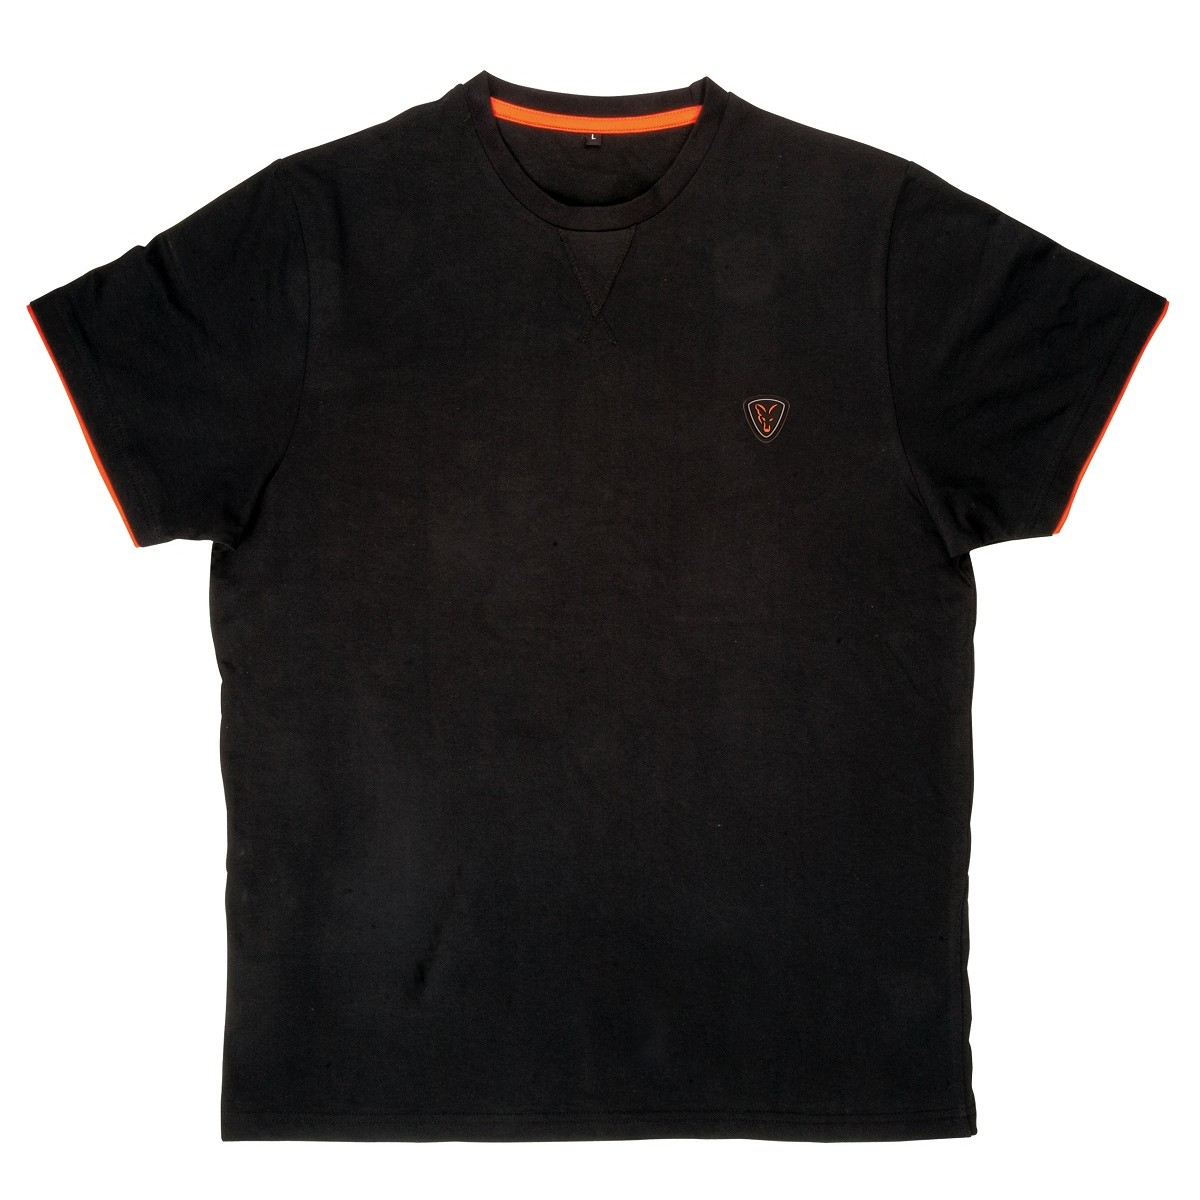 ТЕНИСКА COTTON T-SHIRT BLACK/ORANGE FOX